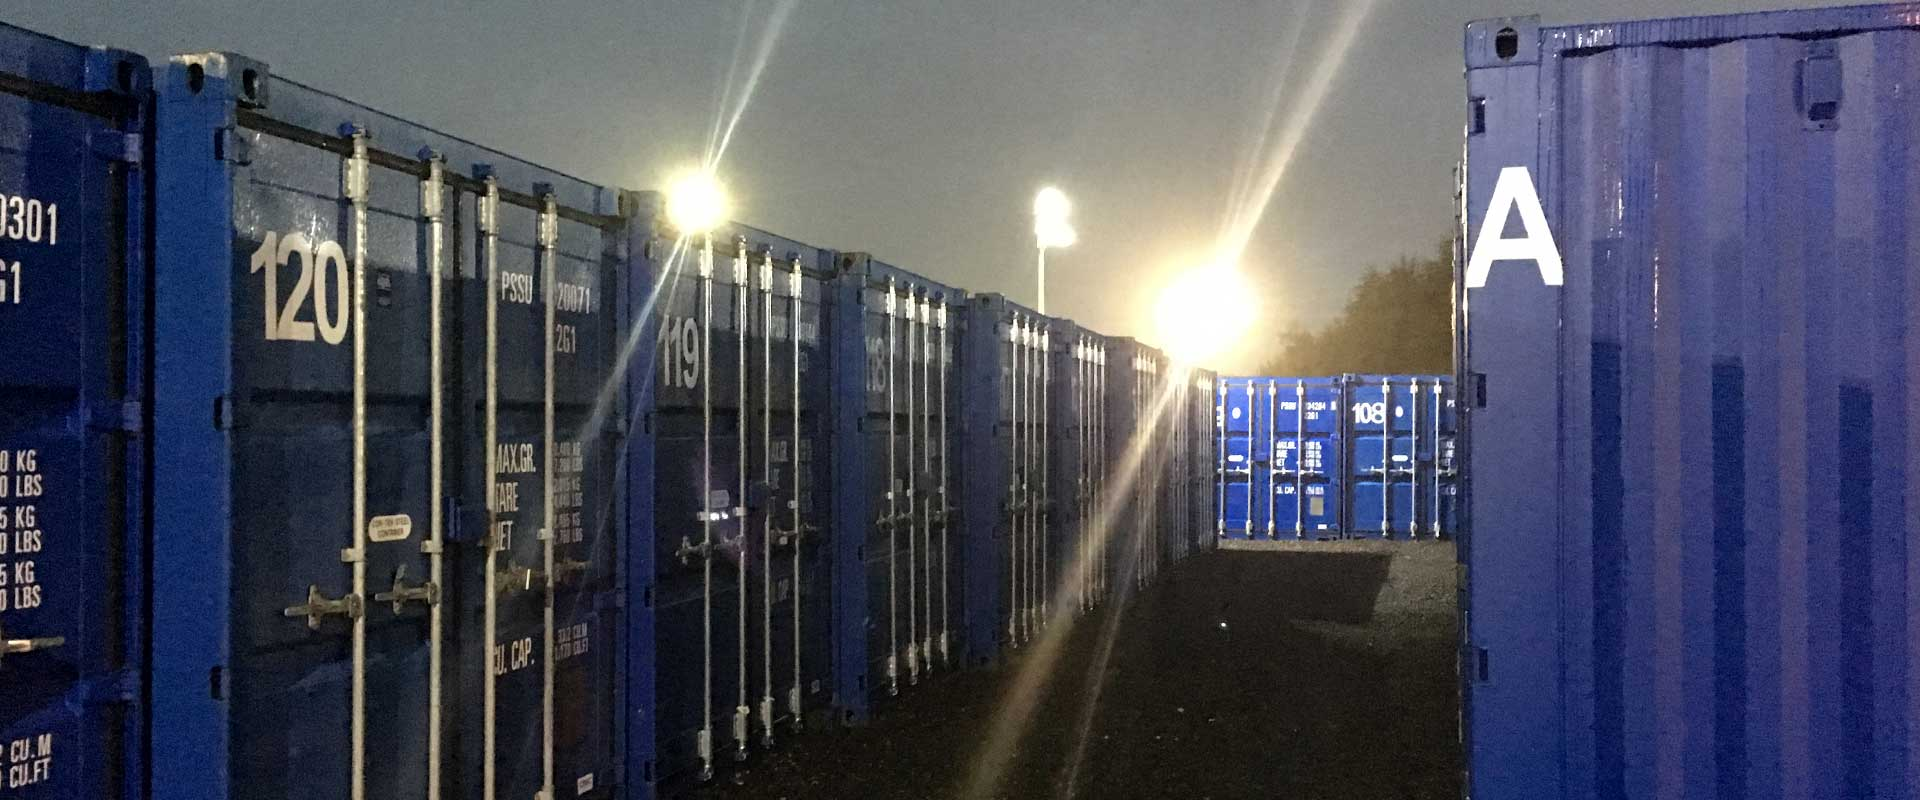 Robinsons Self Storage floodlight units in a row